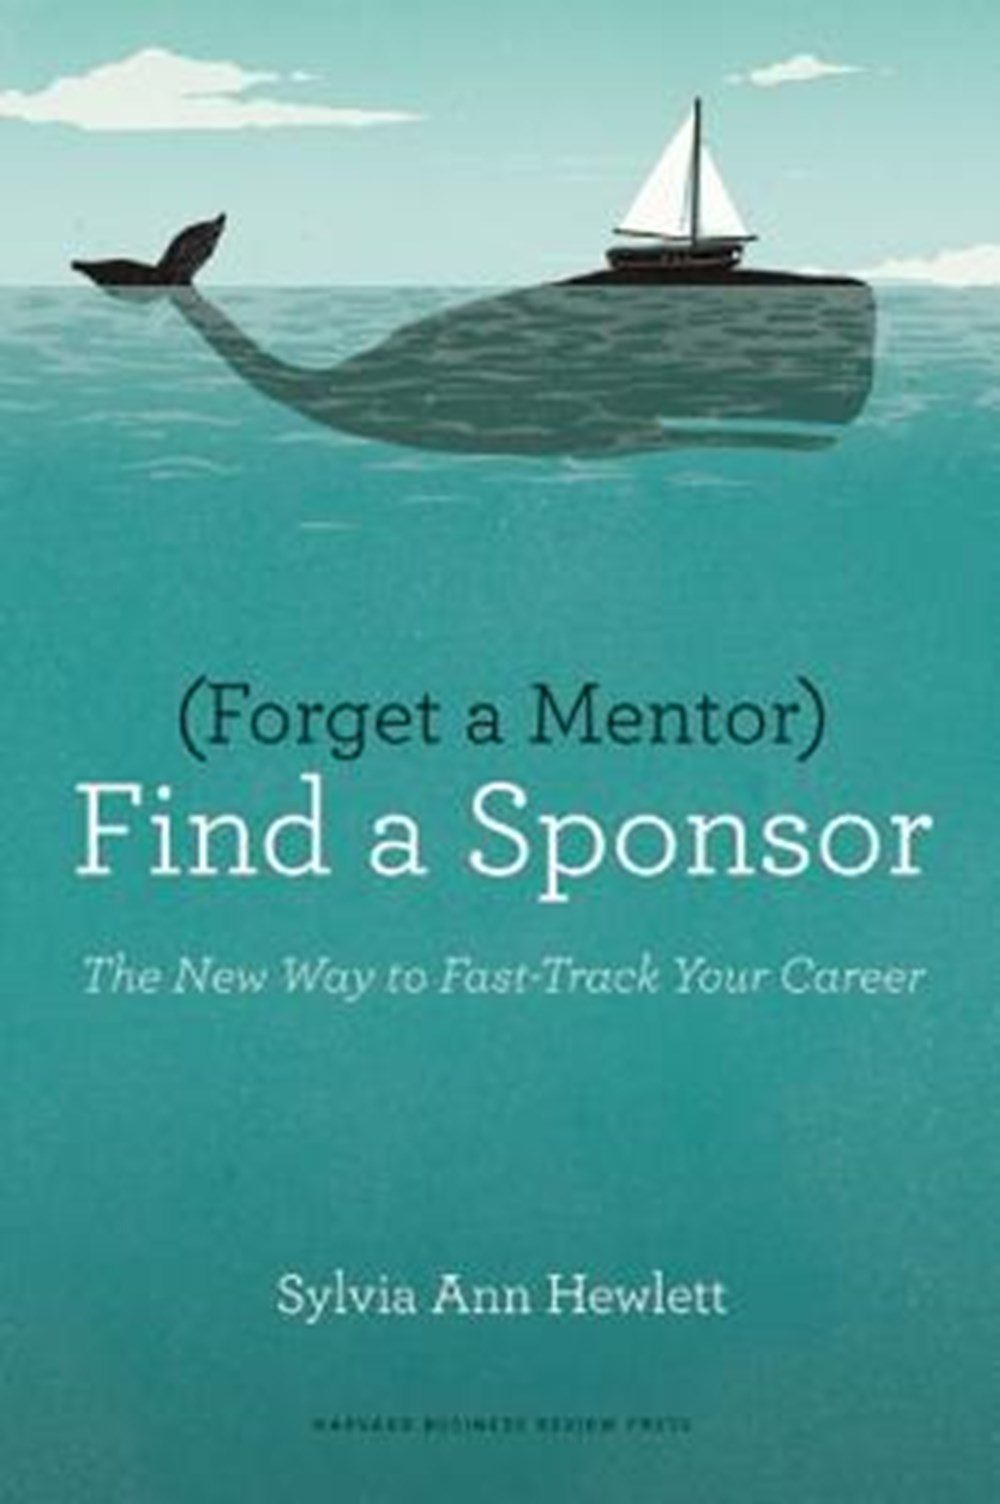 Forget a Mentor, Find a Sponsor The New Way to Fast-Track Your Career